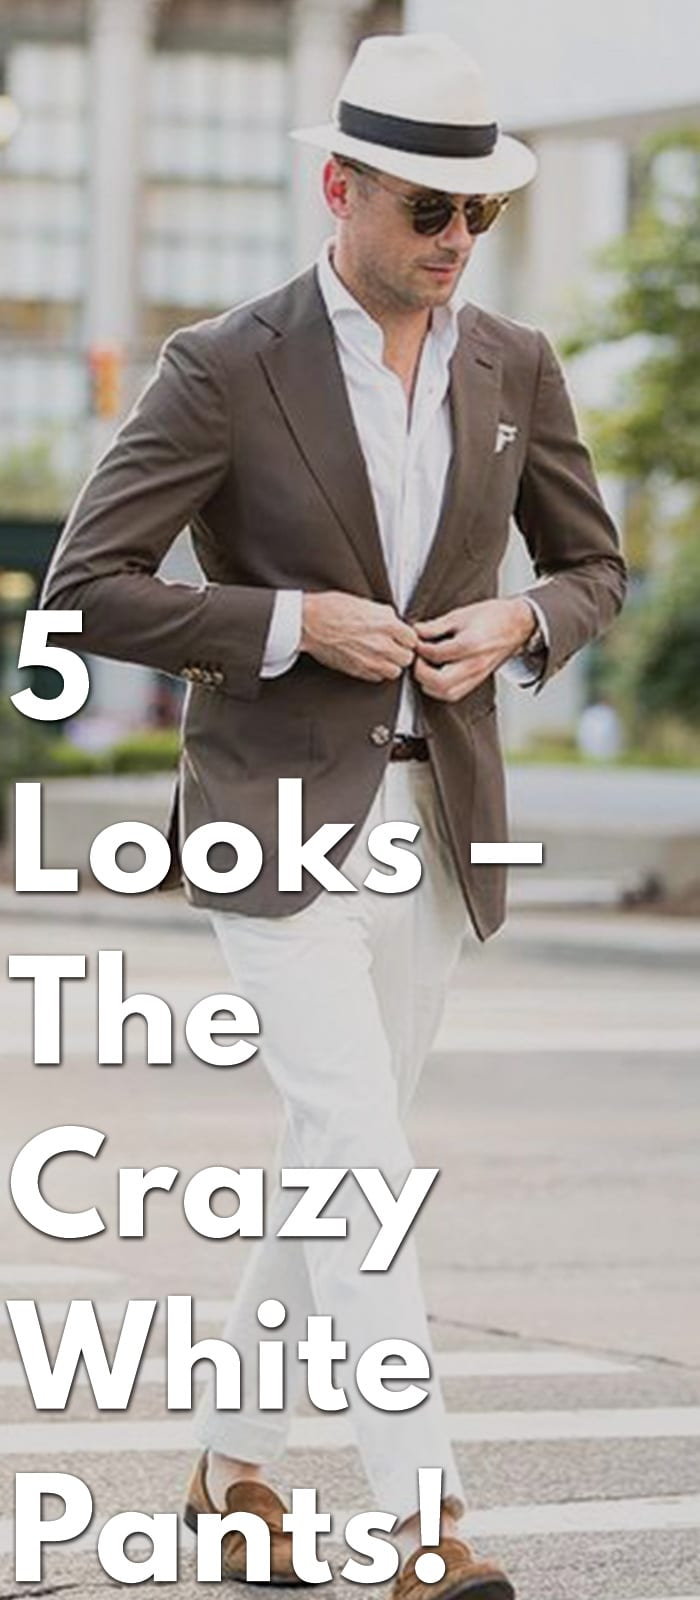 5-Looks–The-Crazy-White-Pants!